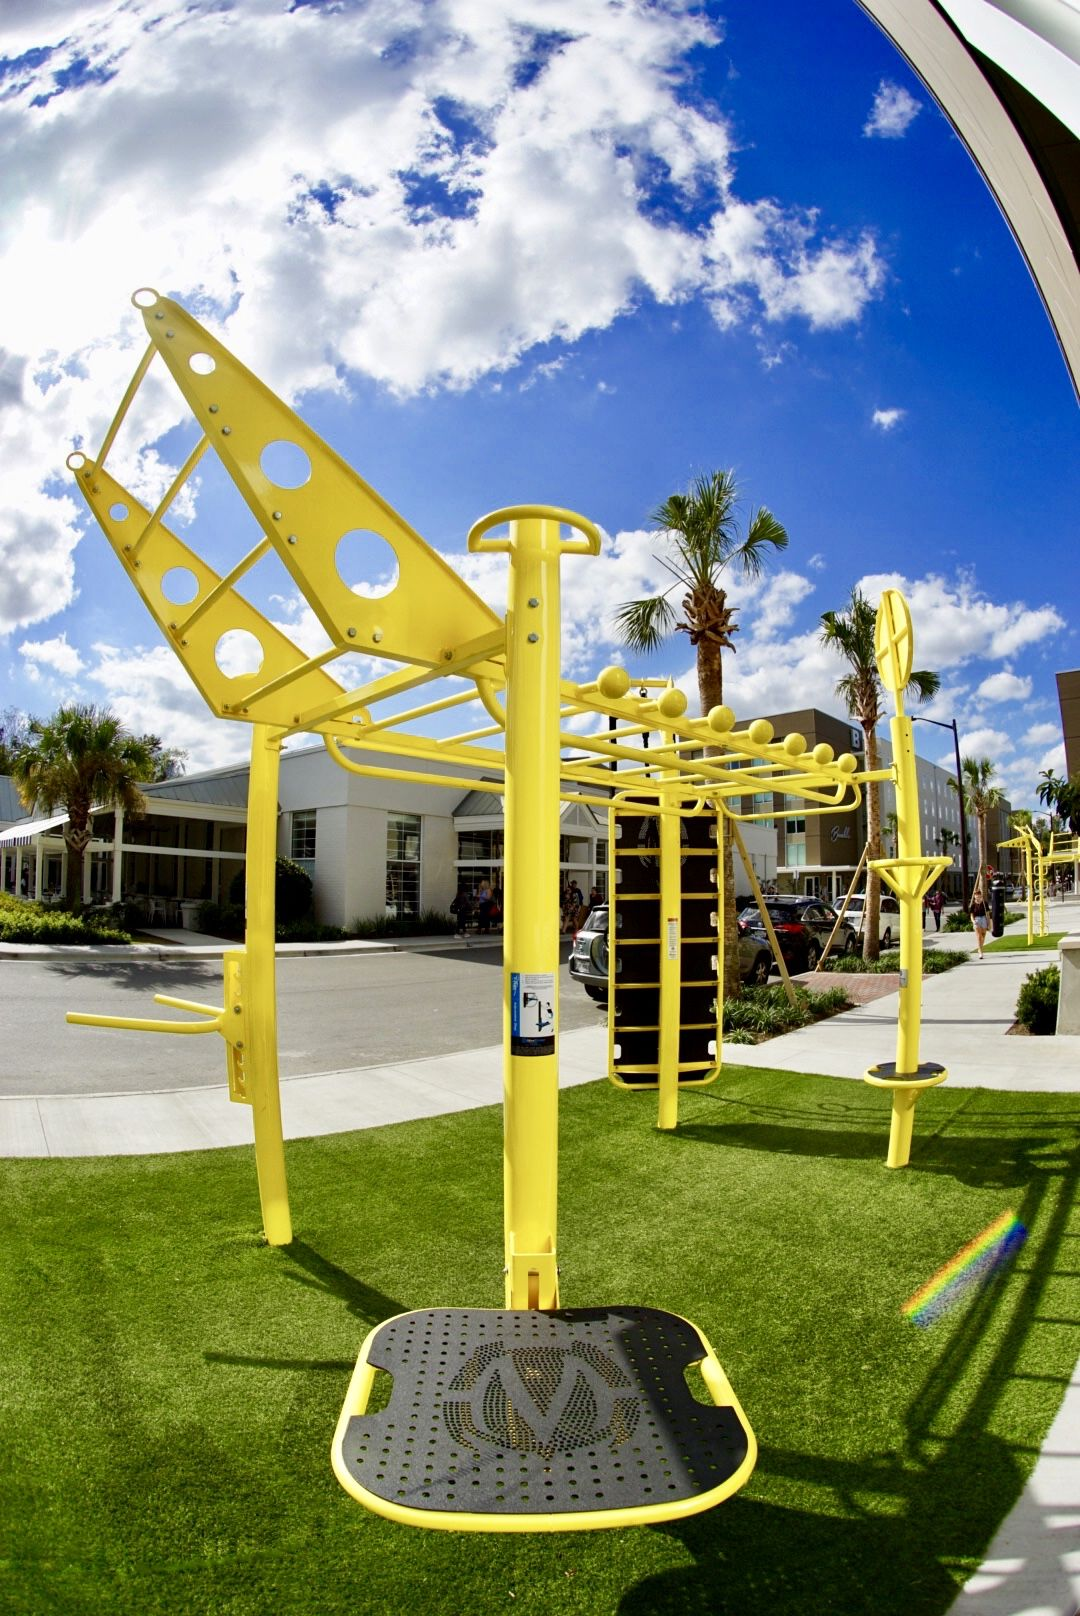 Outdoor fitness equipment at college campus movestrong t